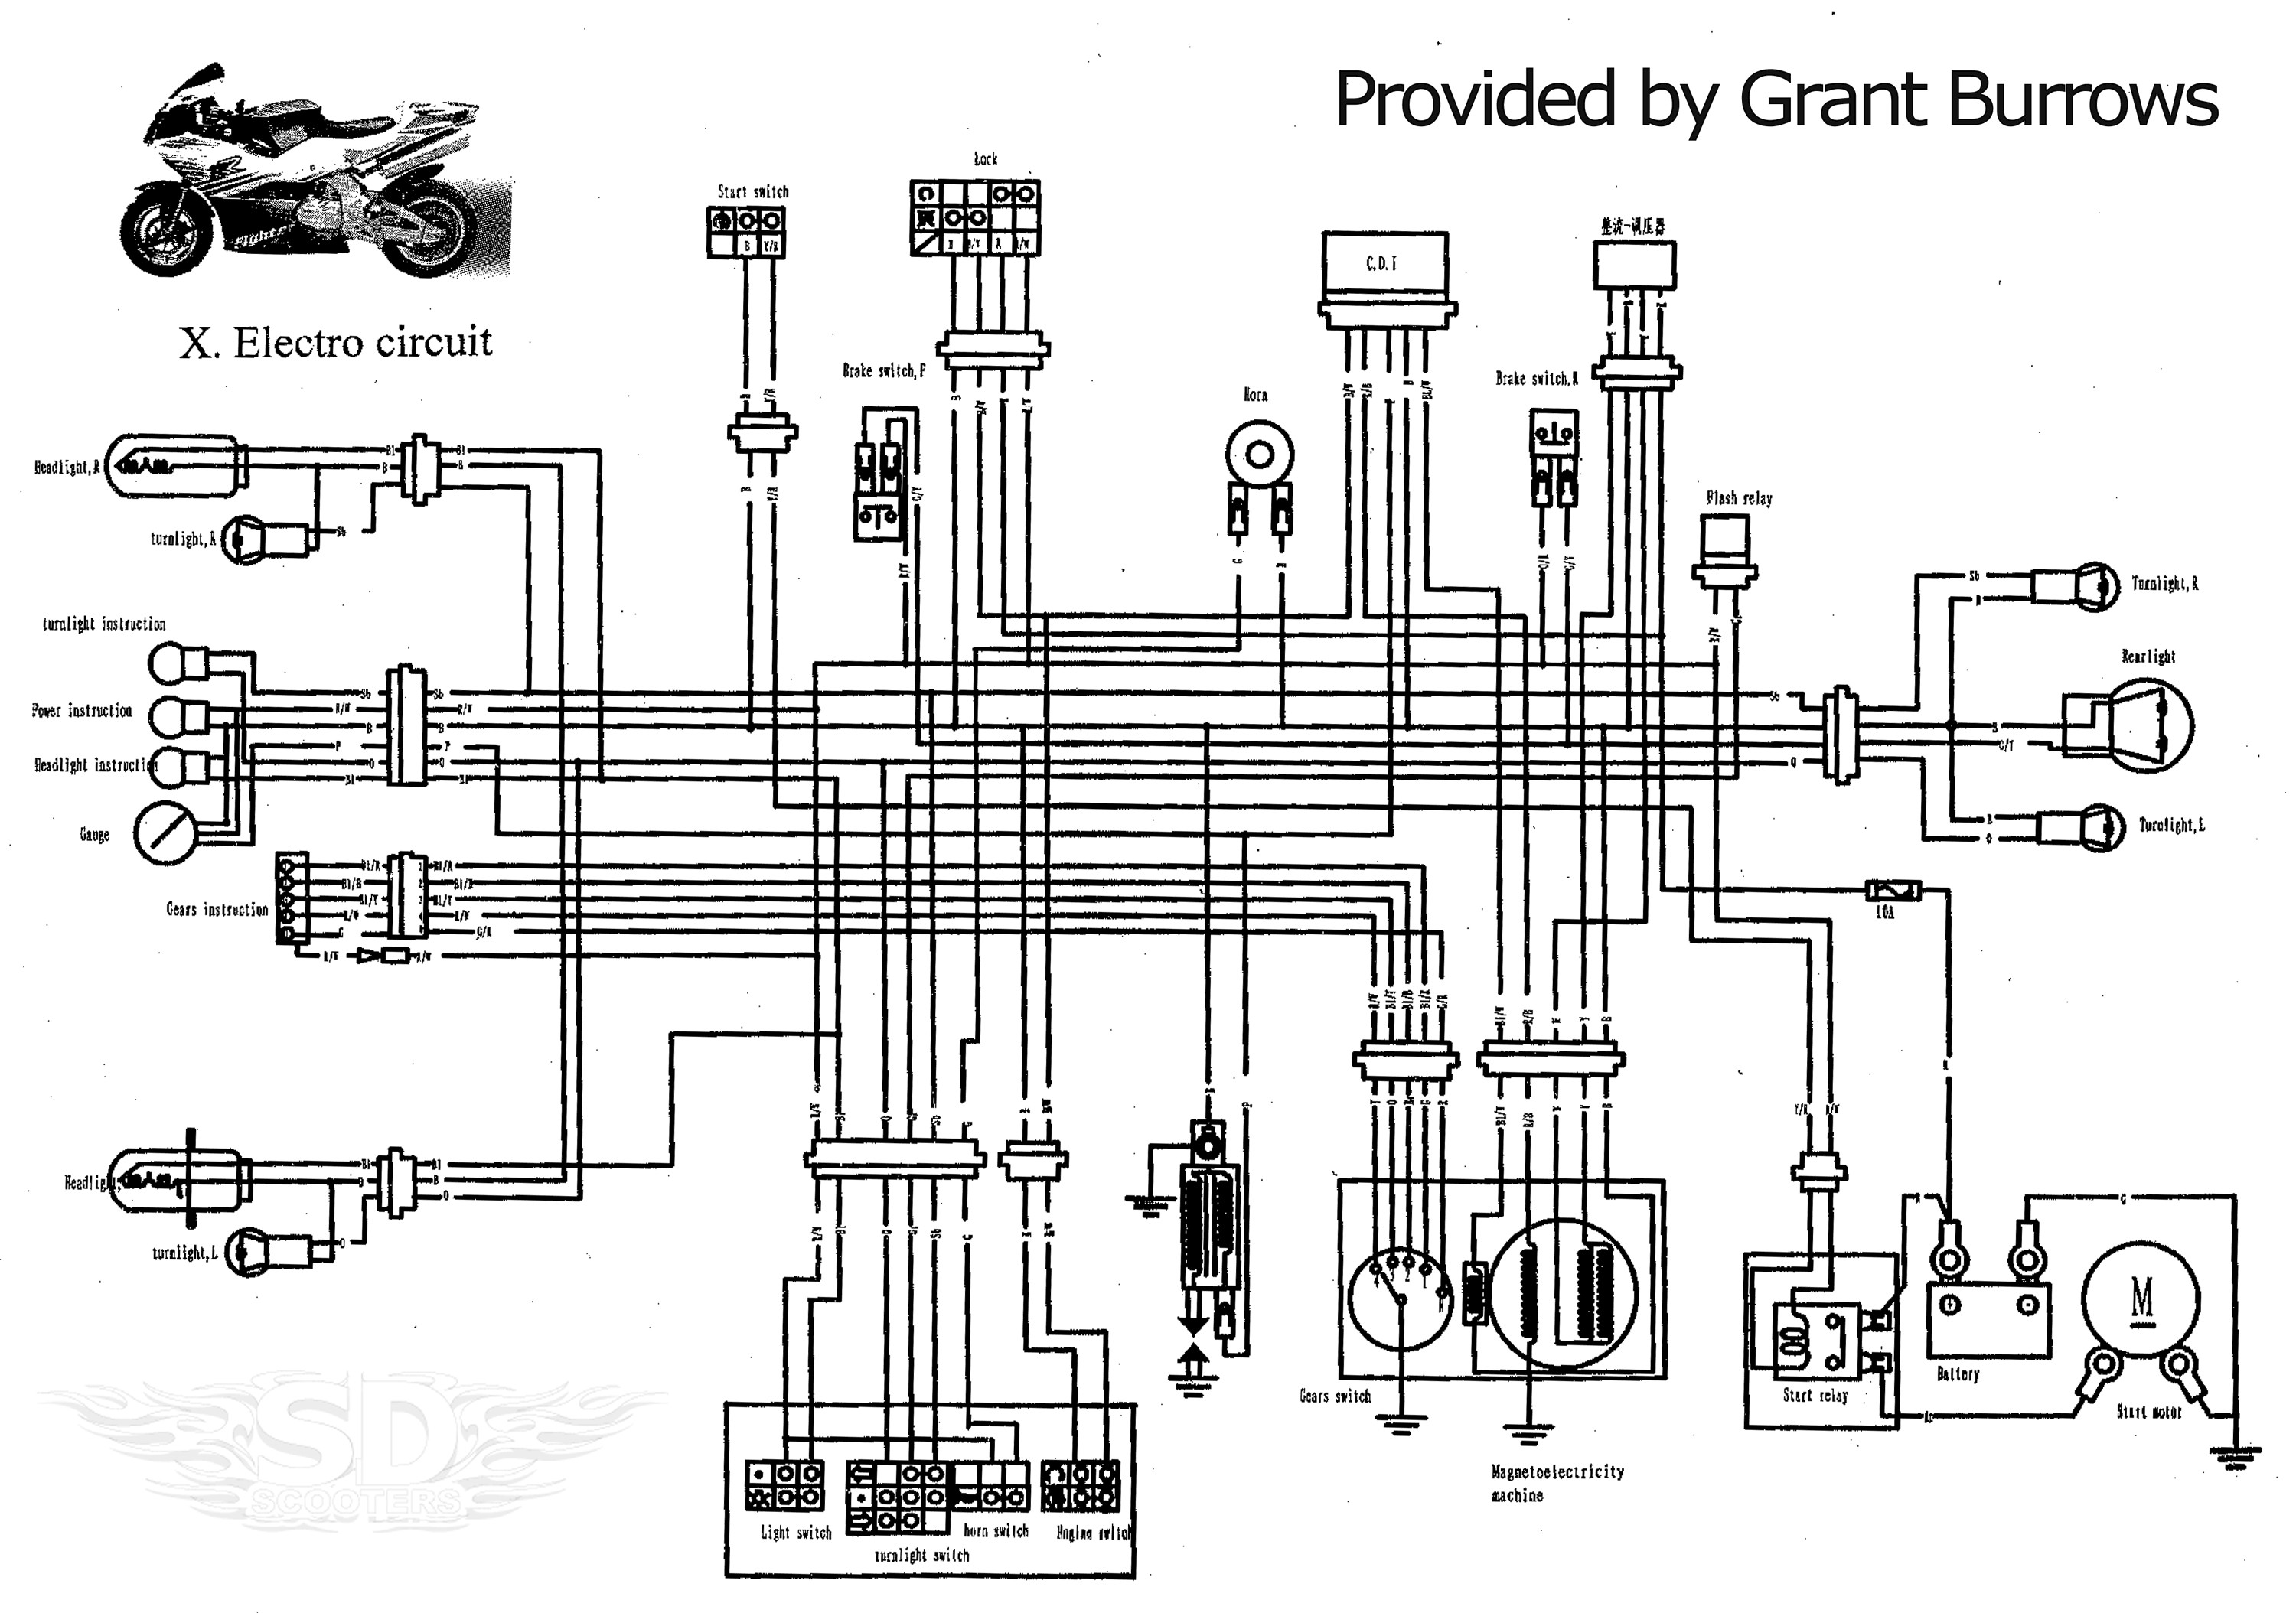 Diagram Of A 2 Stroke Engine Engine Wiring Diagram as Well 2 Stroke Bike Engine Wiring Diagram Of Diagram Of A 2 Stroke Engine